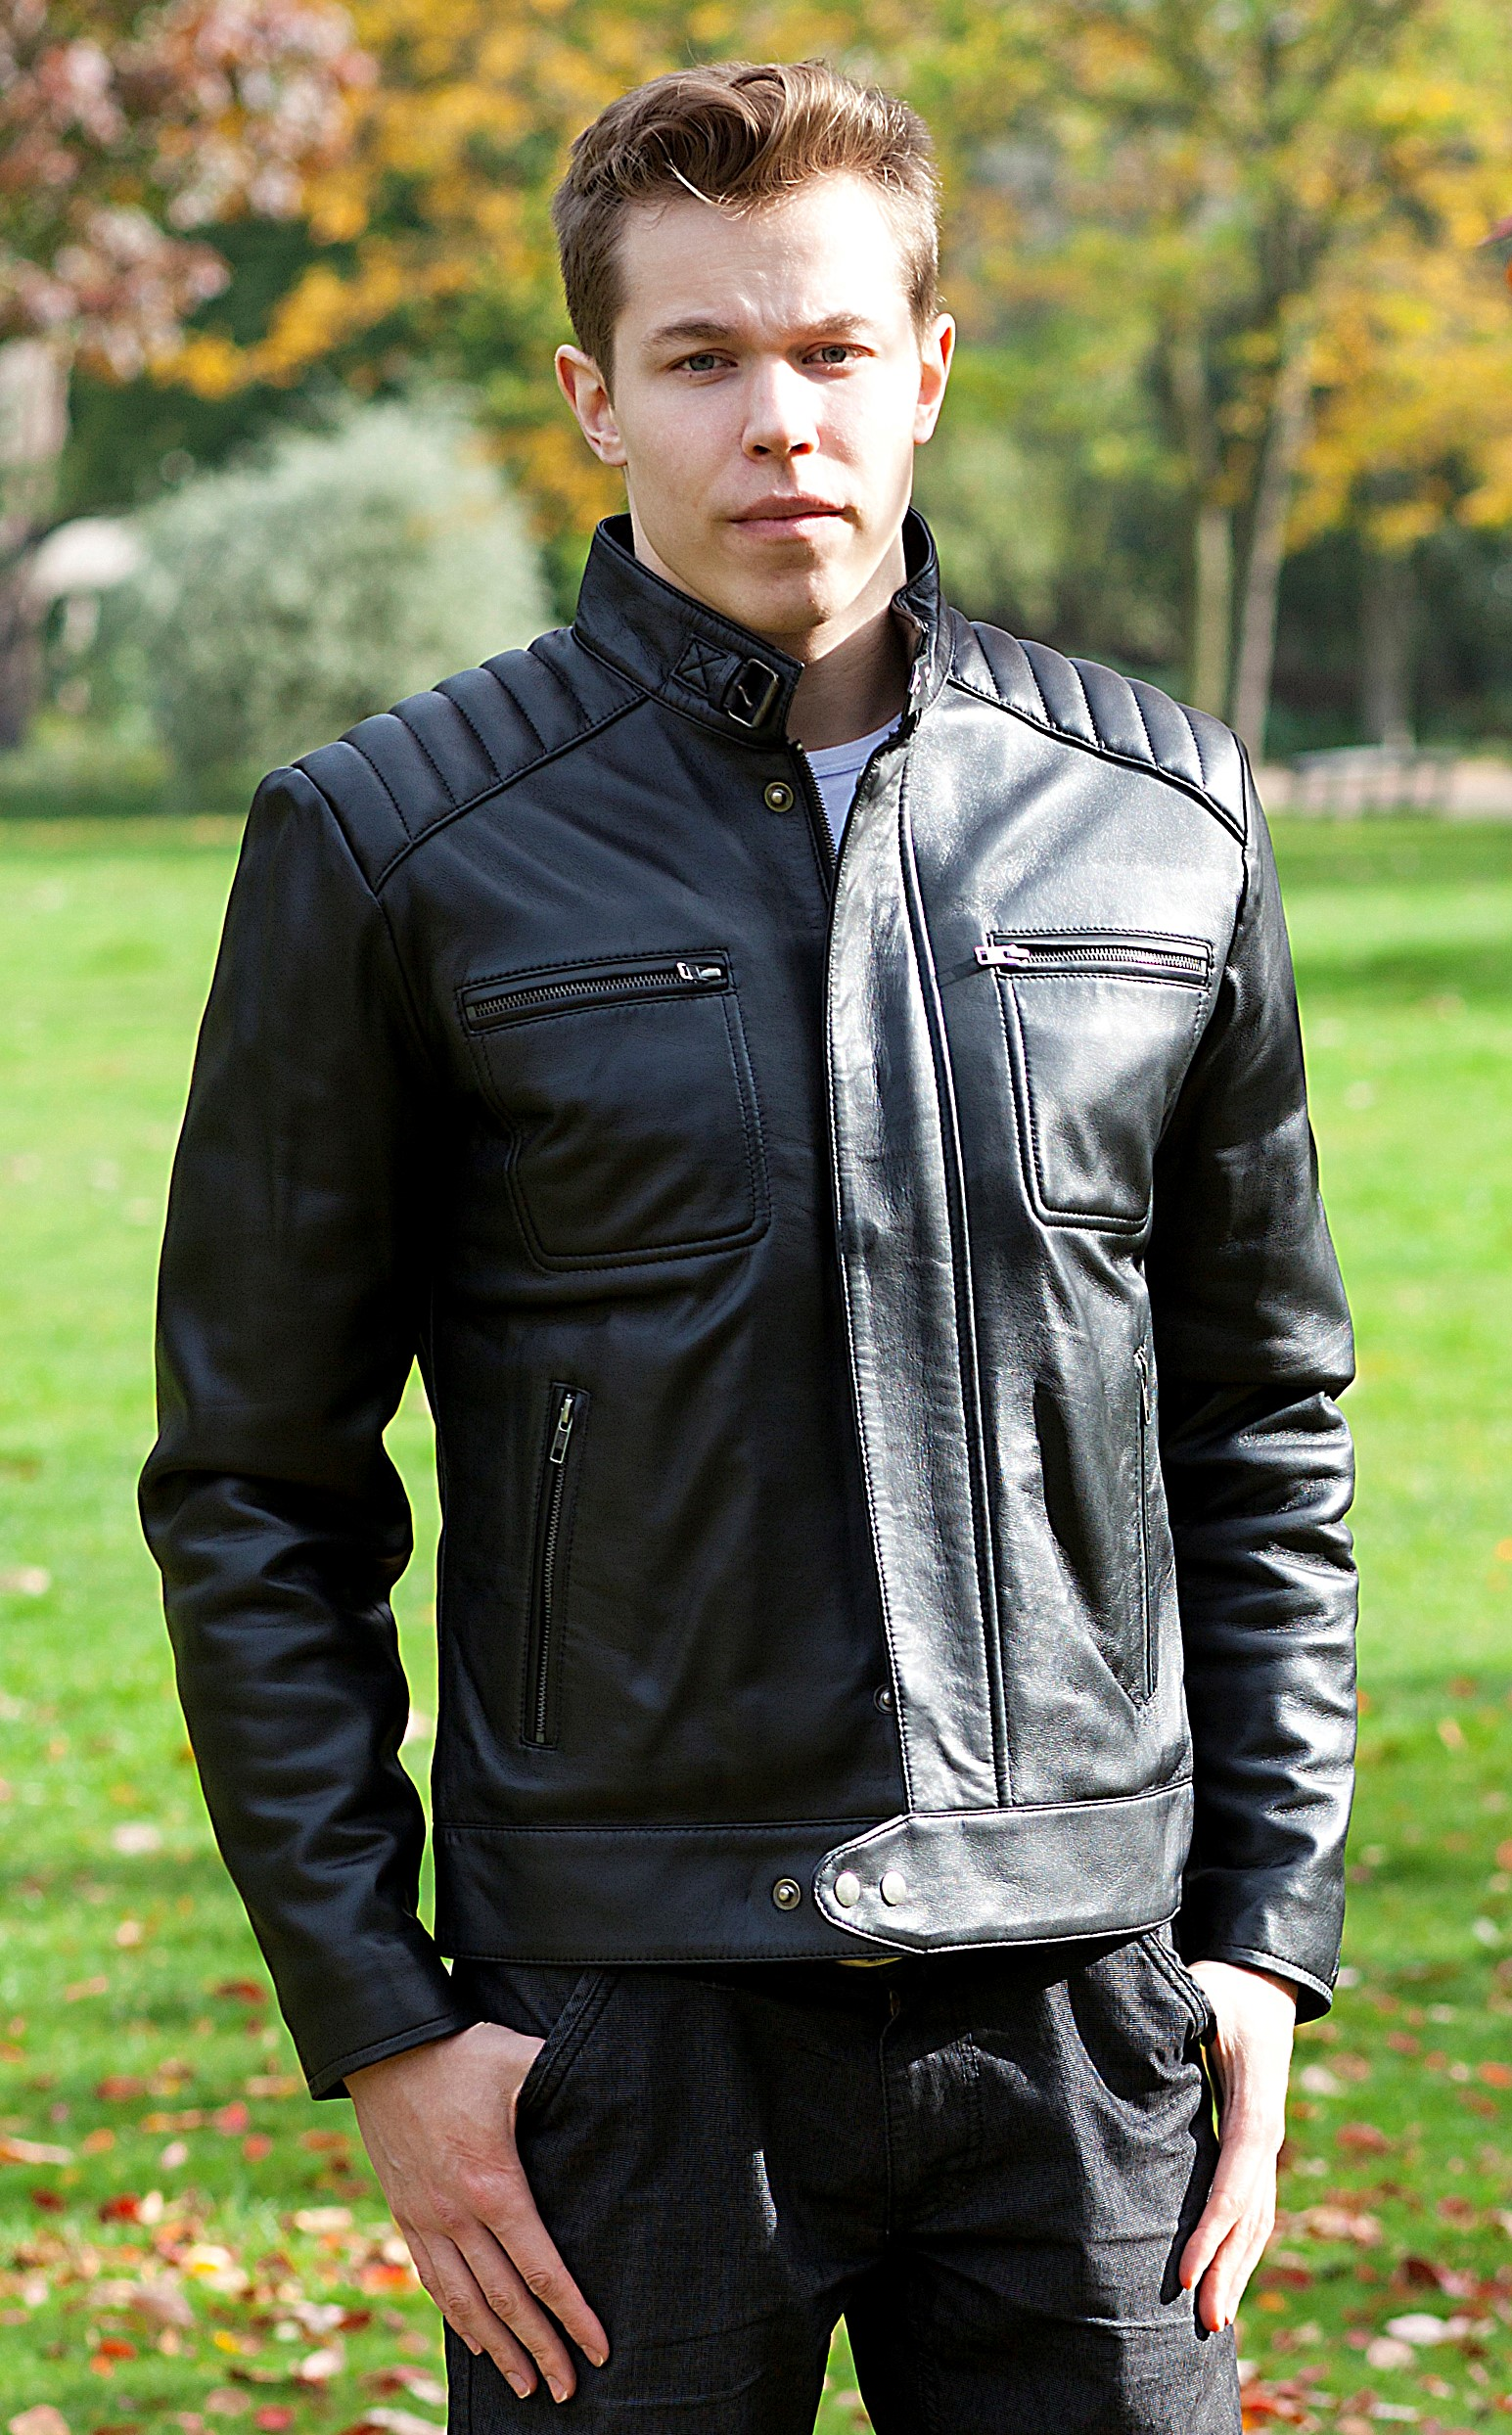 Men Leather Jacket Biker Leather Jacket Leather Jacket Black Mens Jacket Black Leather Jacket Men Biker Jacket Mens Quilted Leather Jacket Vesture Shop Online Store Powered By Storenvy